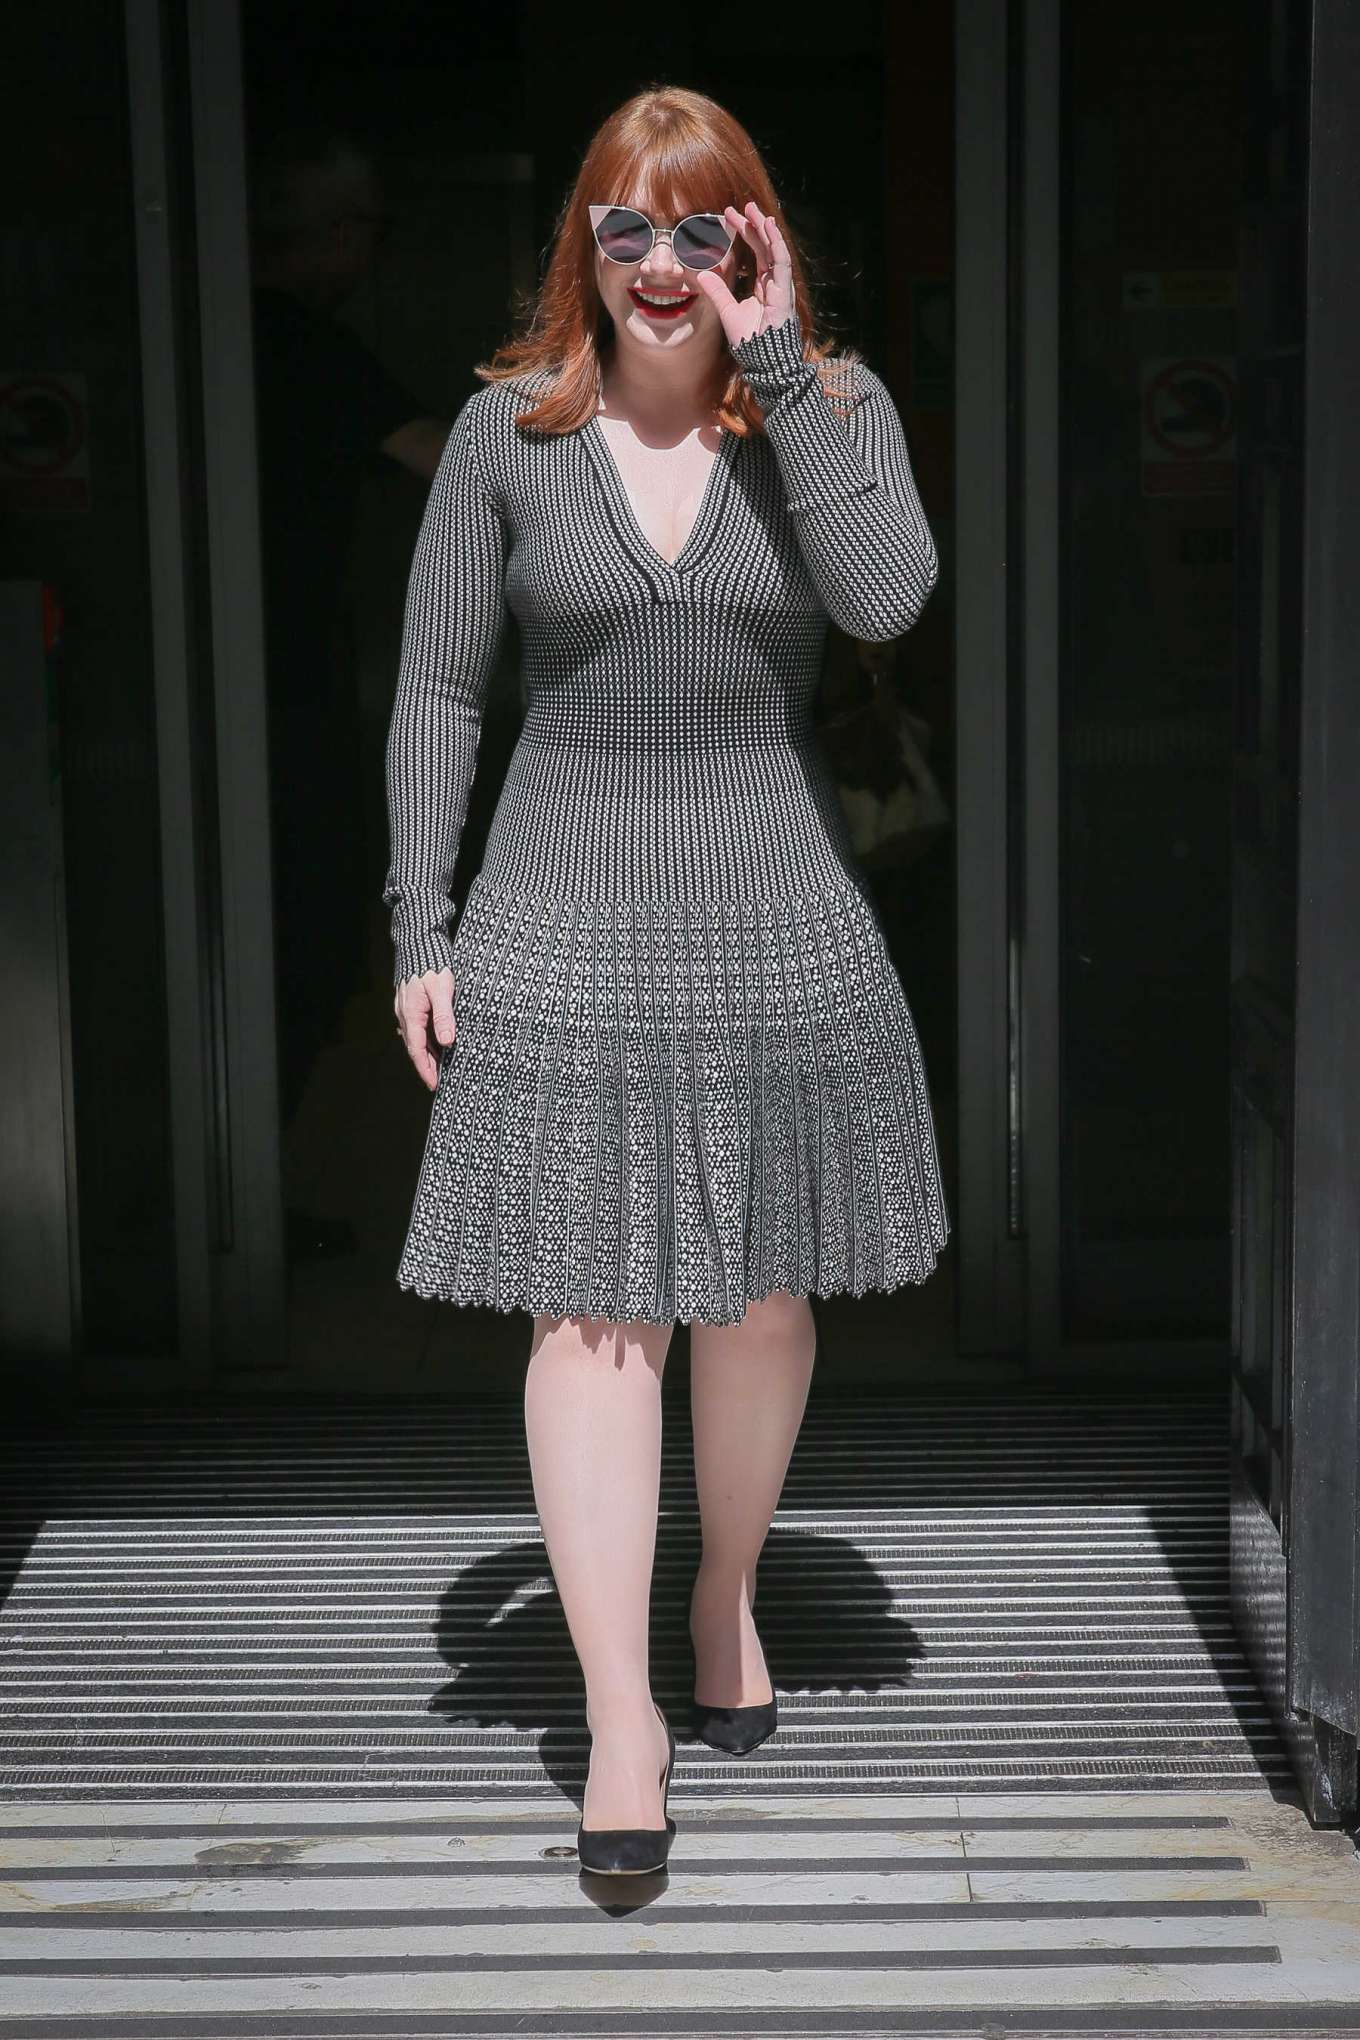 Bryce Dallas Howard 2019 : Bryce Dallas Howard: Out and about in London-13